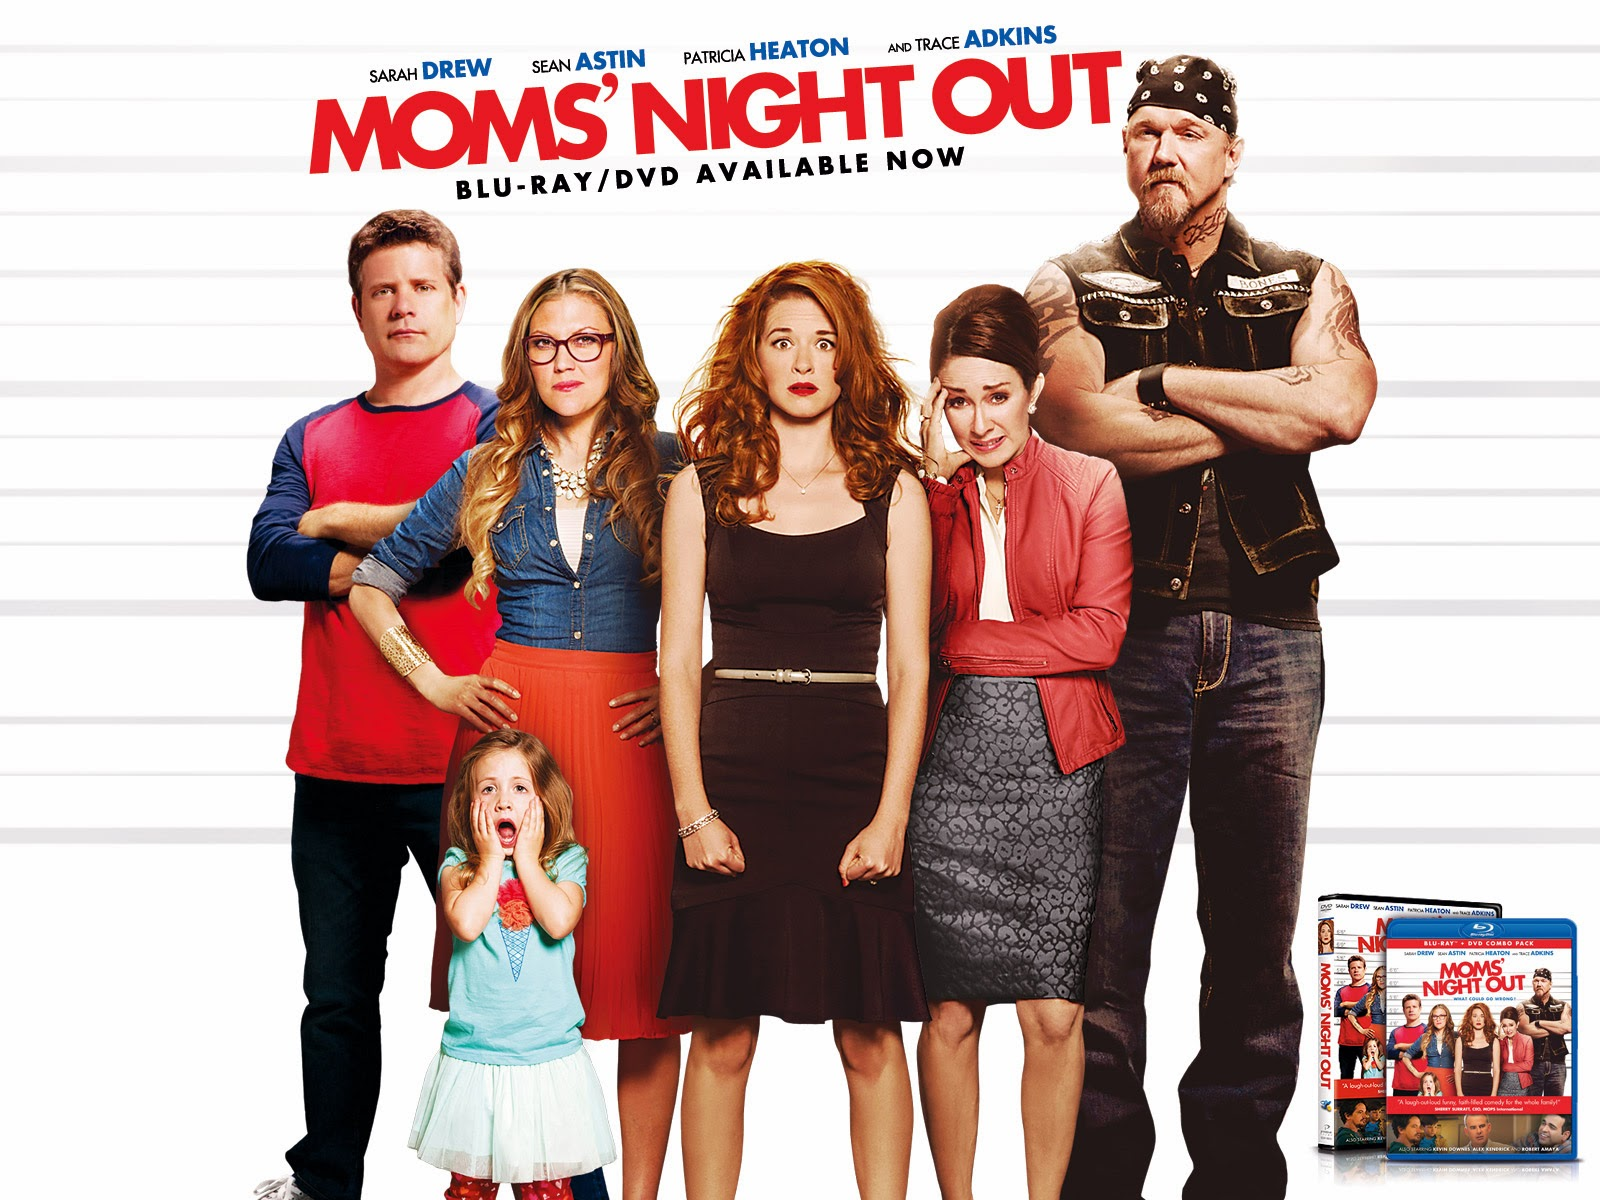 www.momsnightoutmovie.com